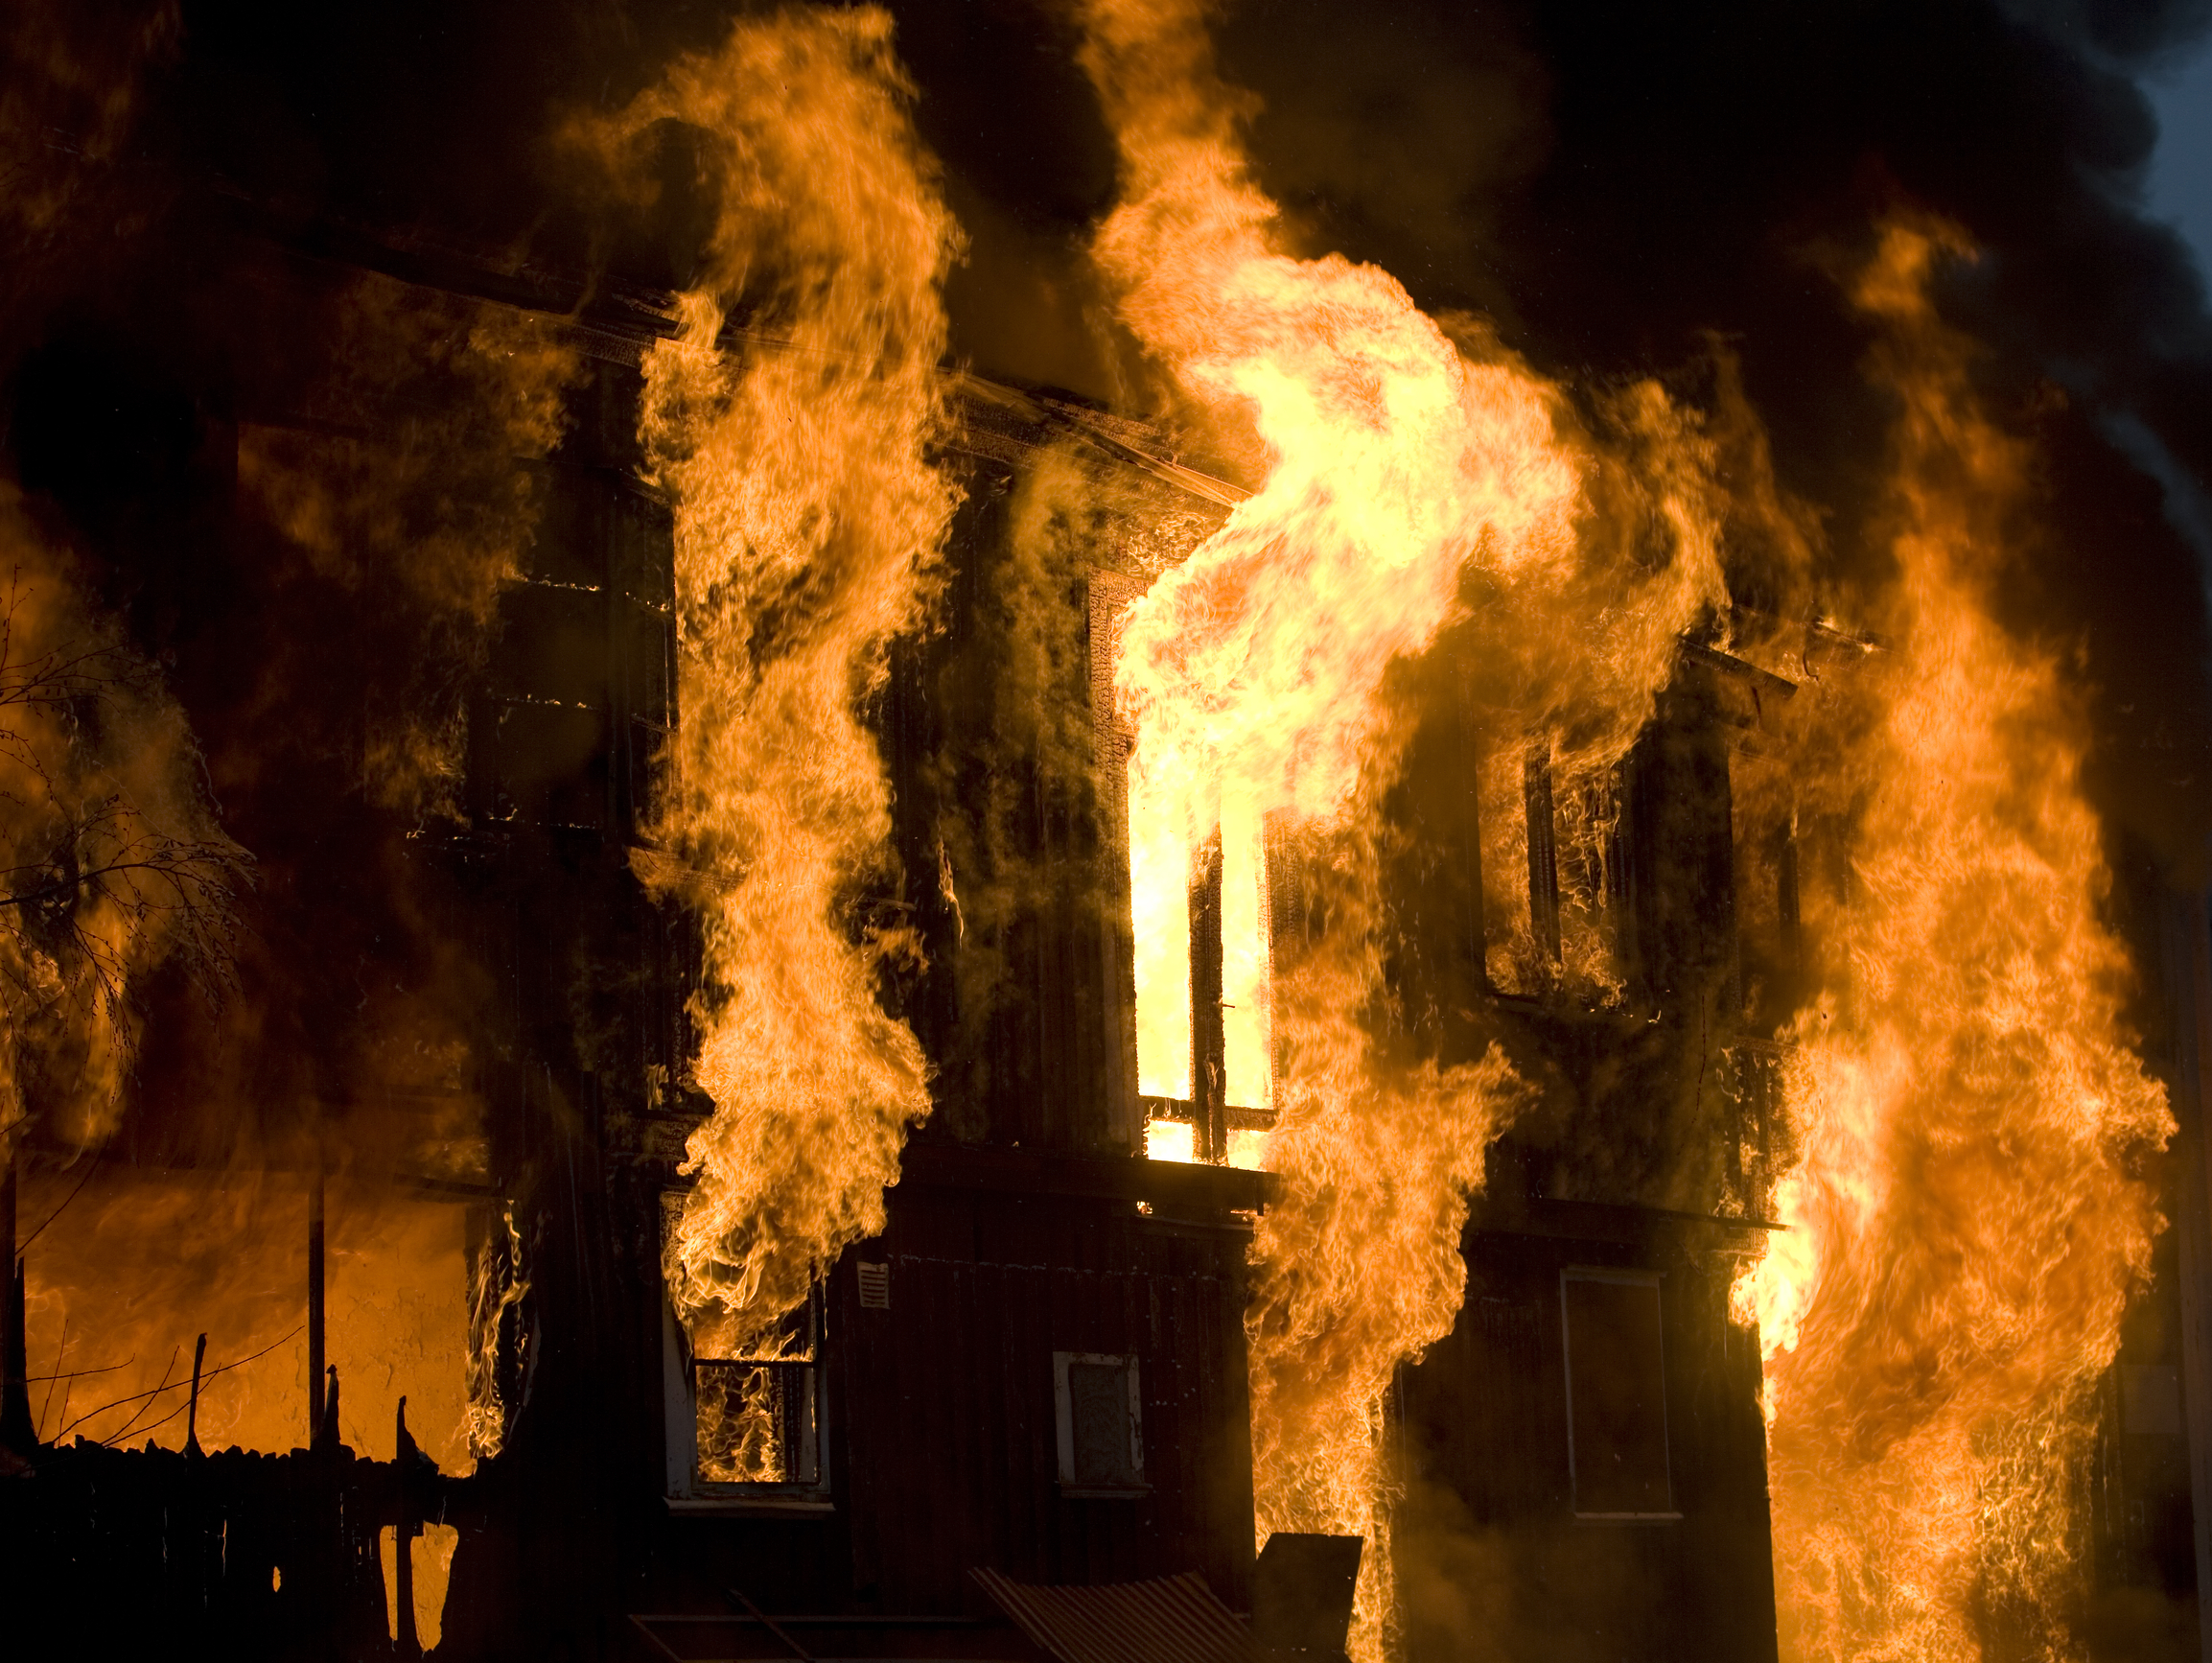 Building On Fire : Man in hospital after risking life to heroically save